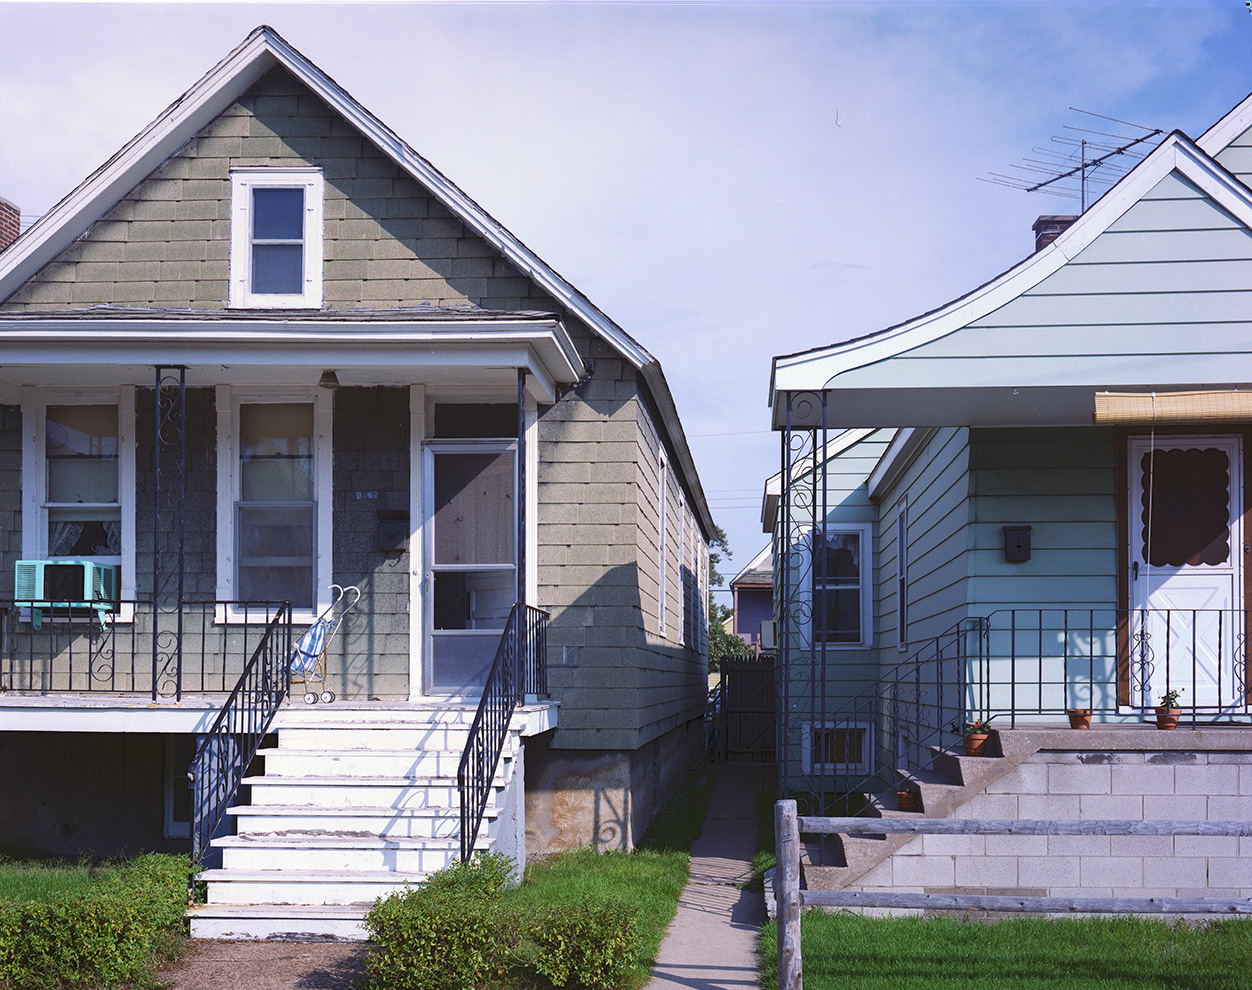 Two Houses and steps, Chicago 1987).jpg